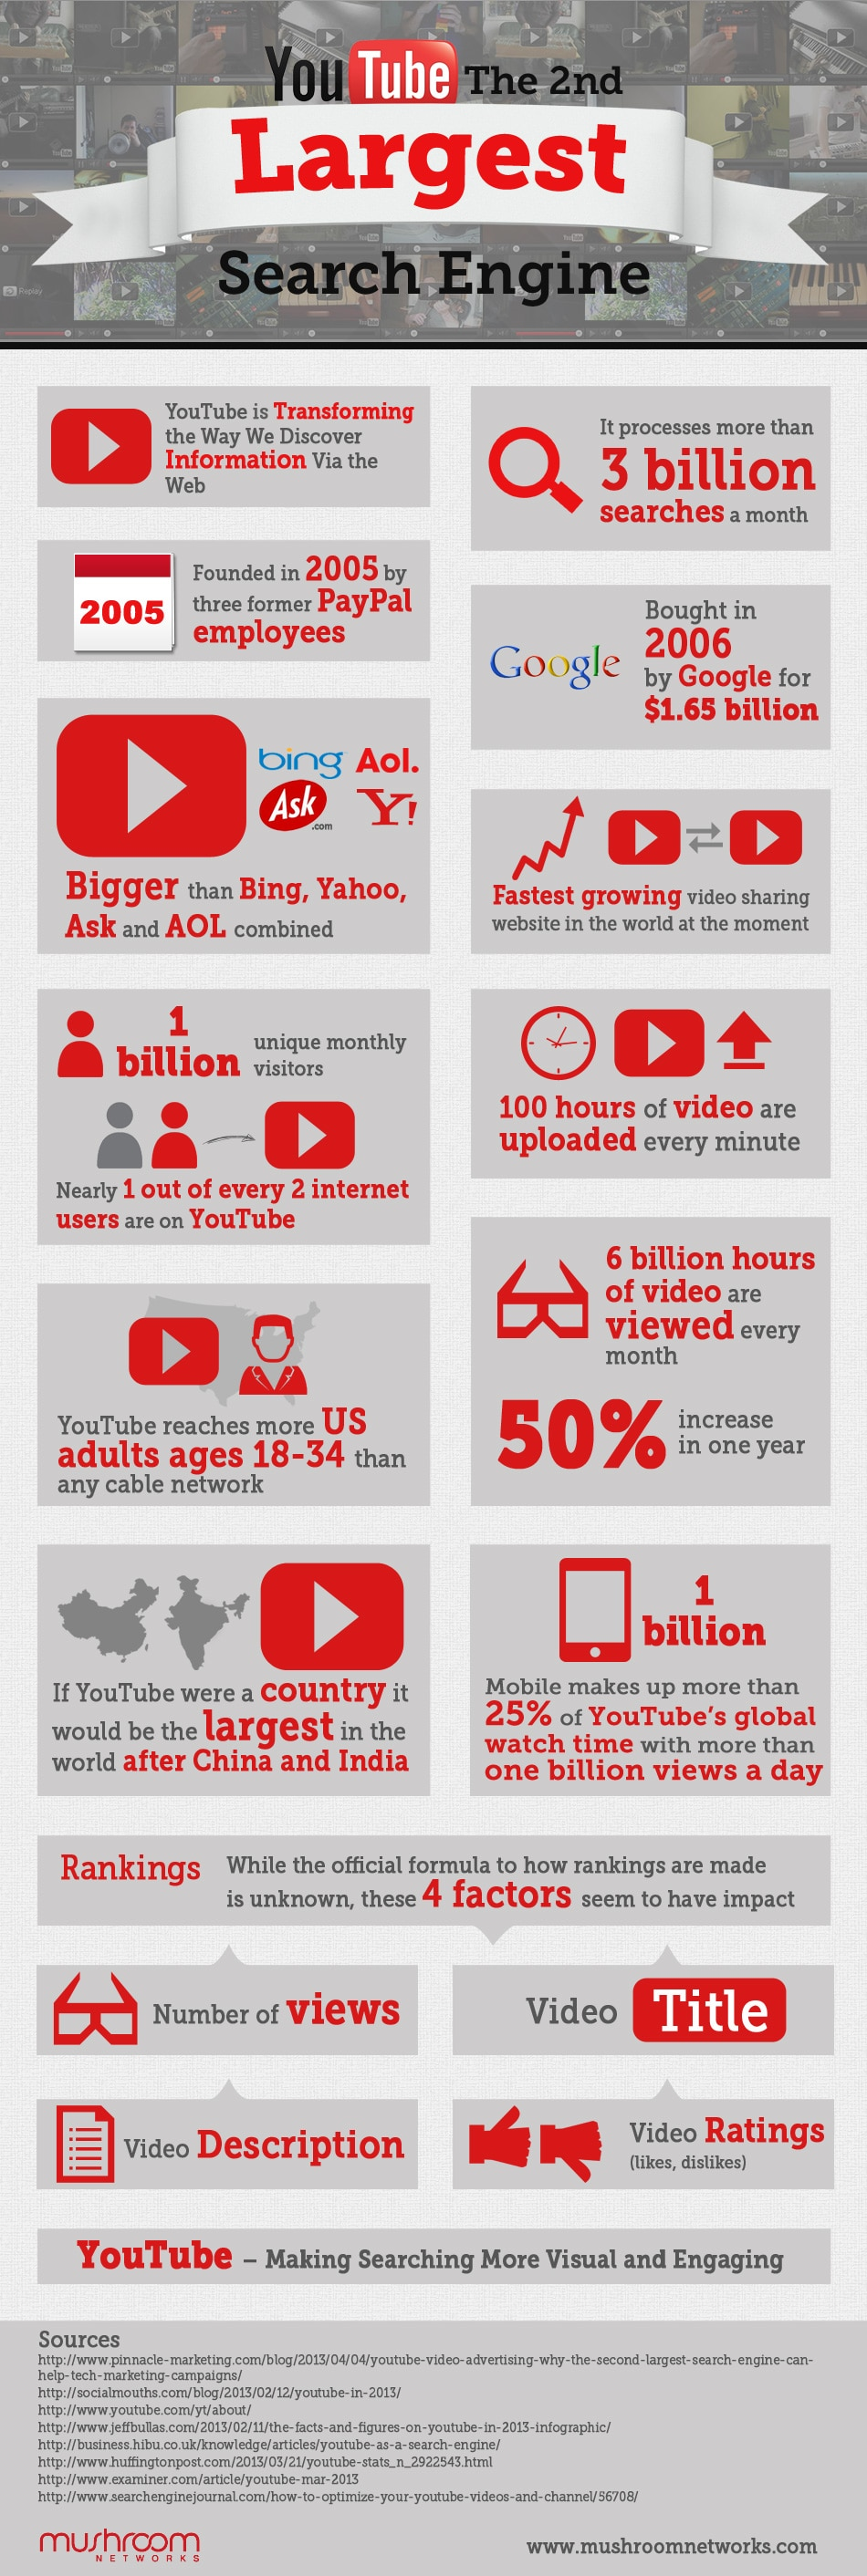 YouTube is the Second Largest Search Engine in the World Infographic